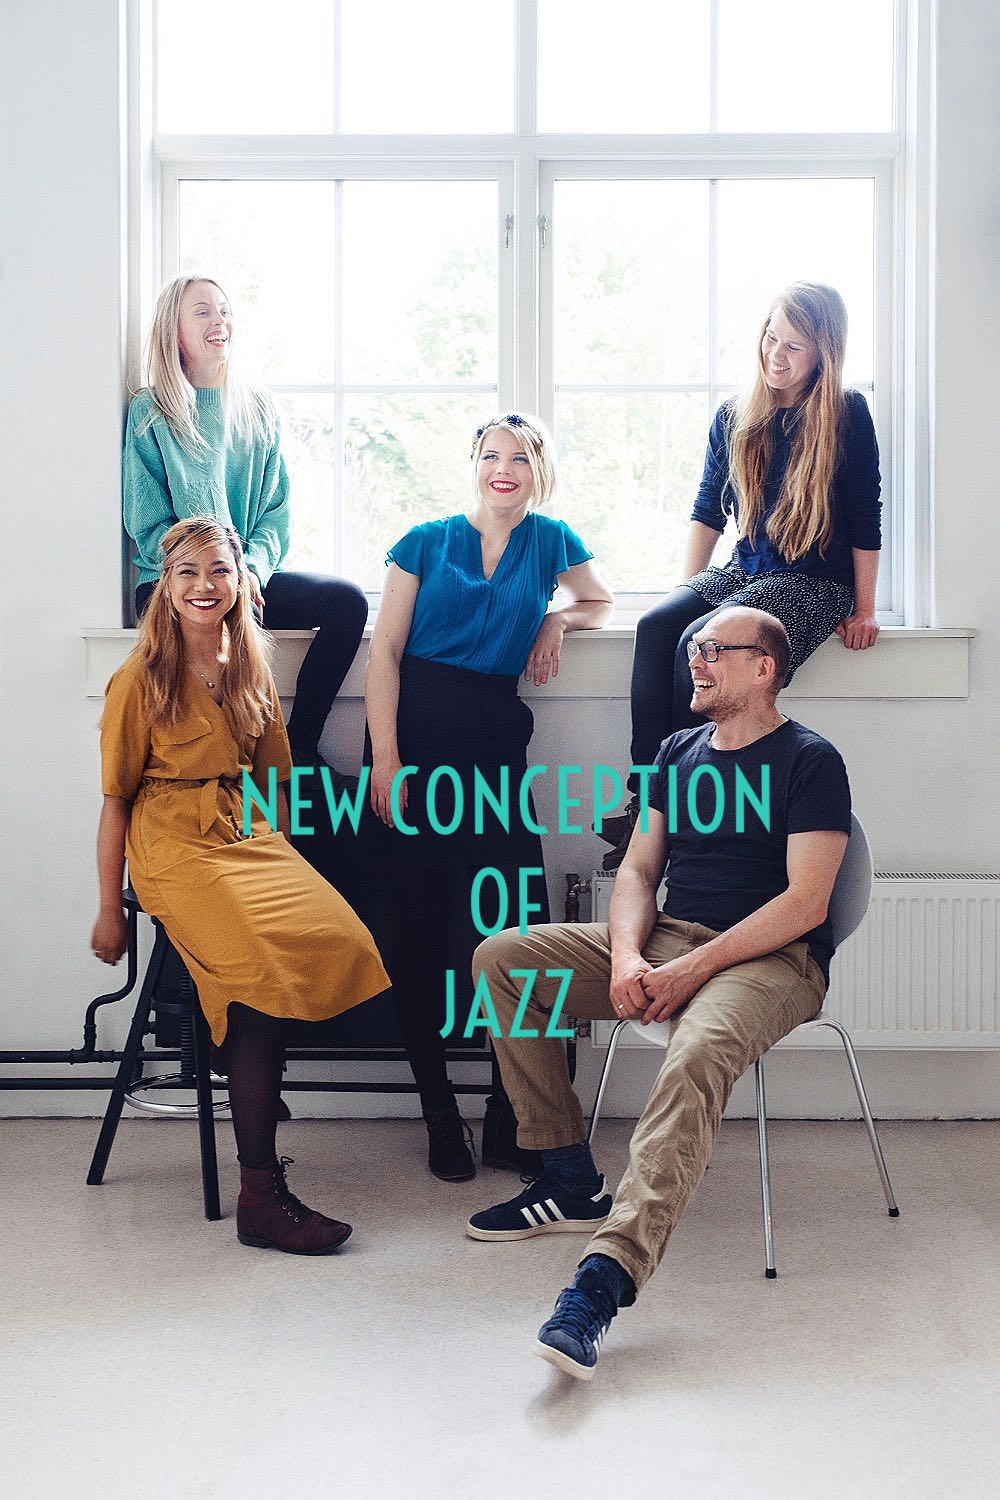 Bugge-Wesseltofts-New-Conception-Of-Jazz-1no-photo-credit.jpg